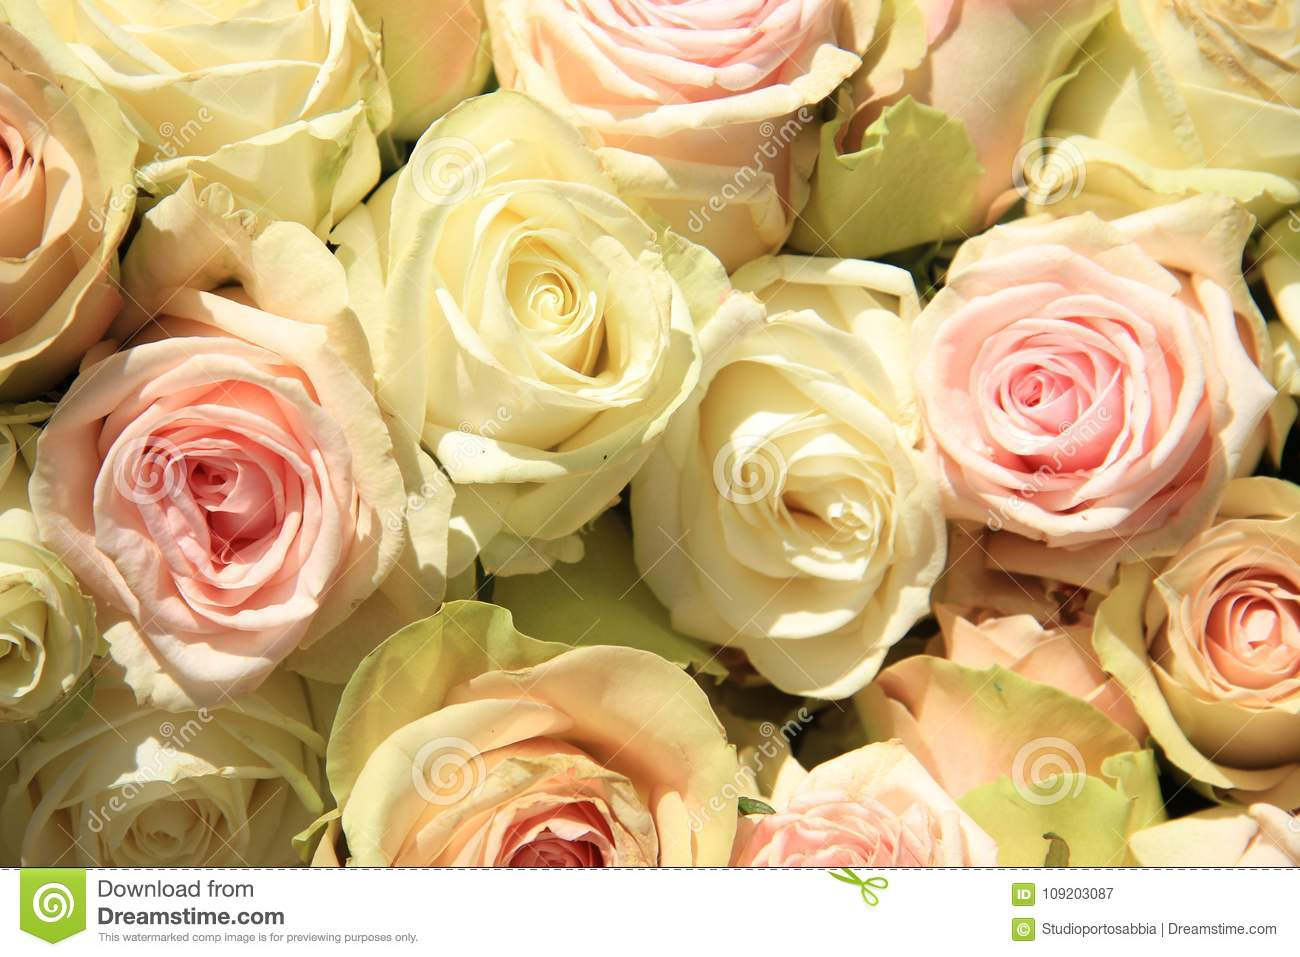 Pastel Wedding Bouquet Stock Image Image Of Roses Colors 109203087